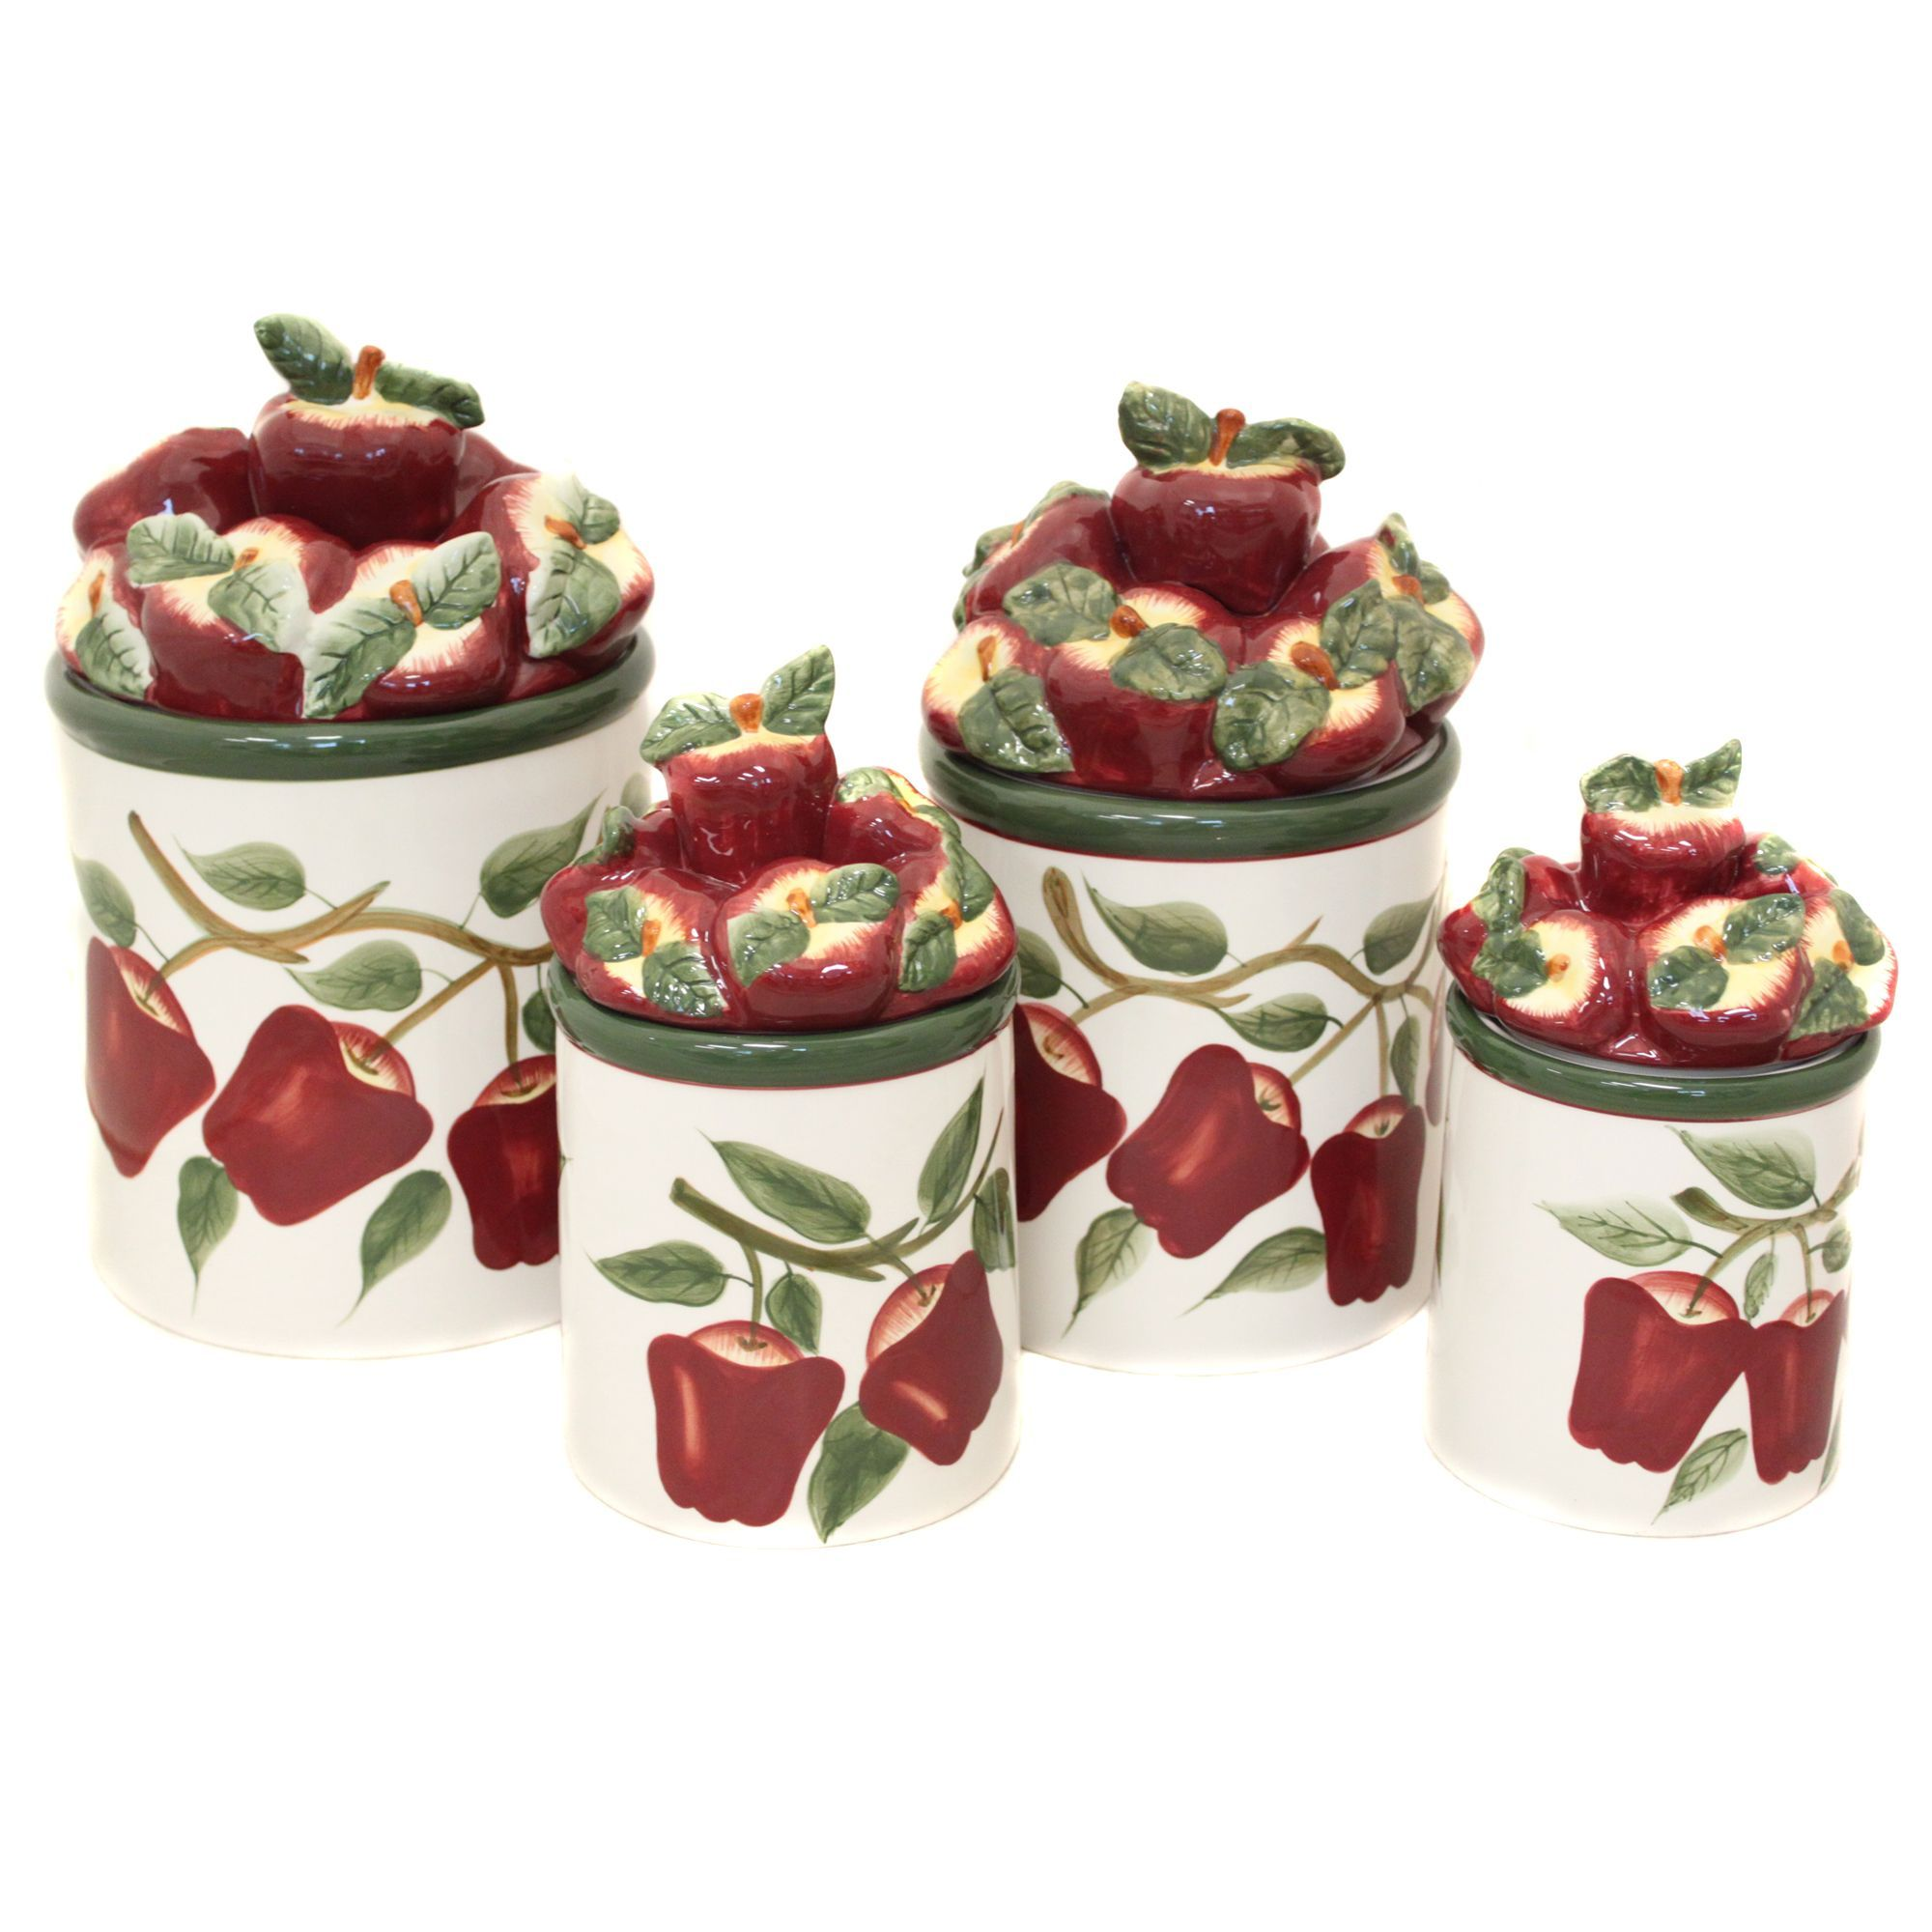 Tuscan old world drake design medium berry kitchen canisters set of 3 - Canister Sets